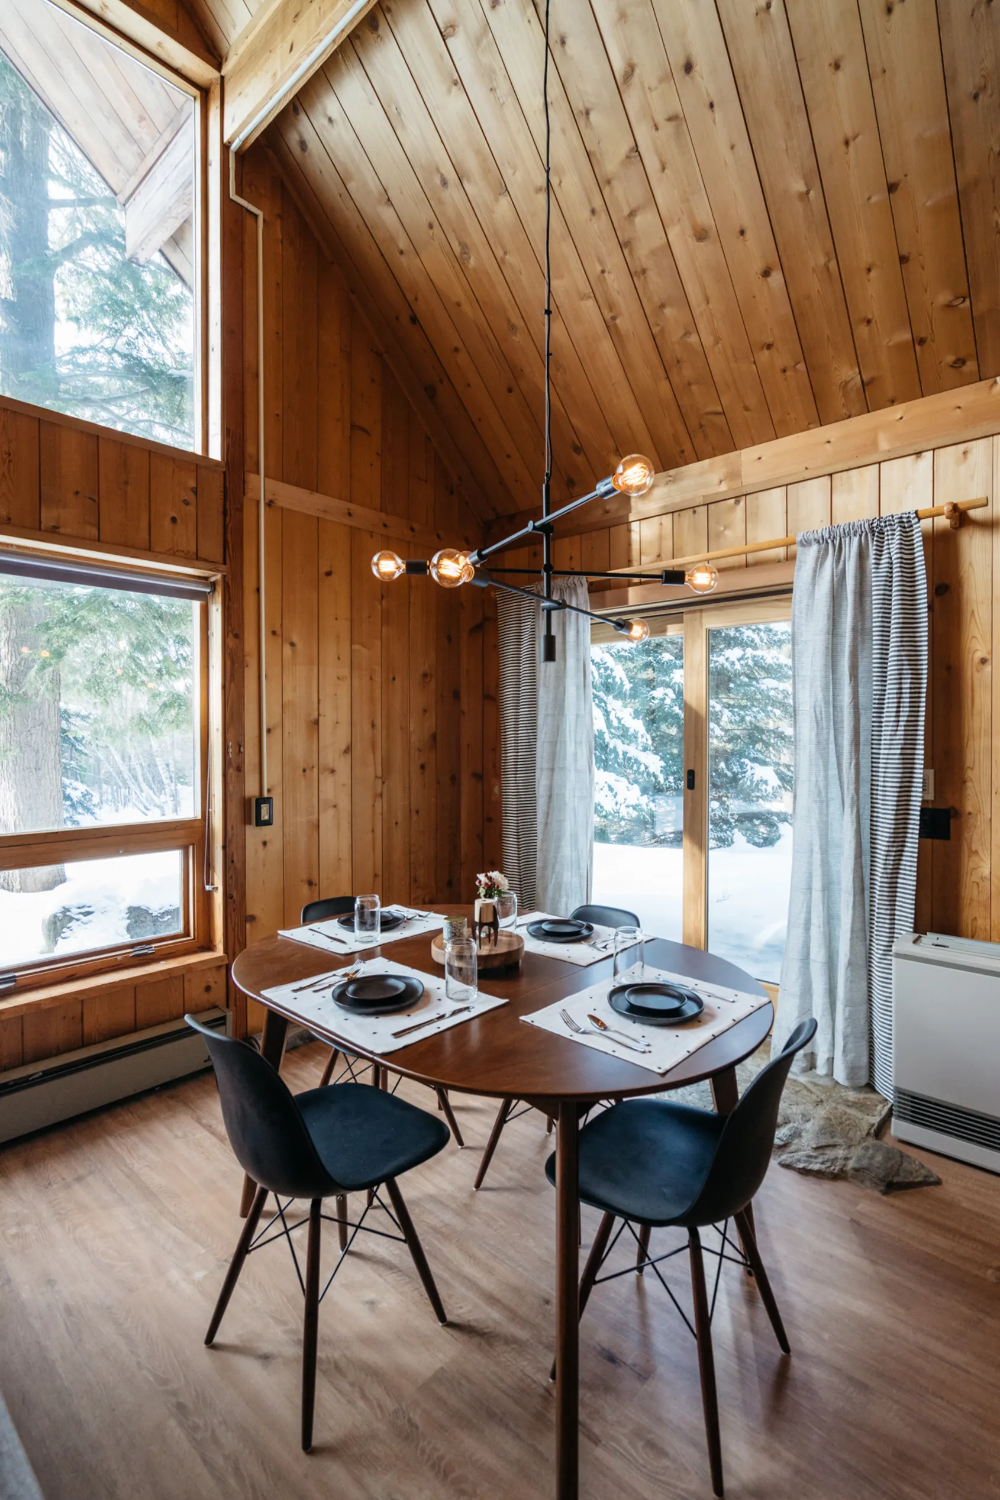 This Cozy Renovated Cabin Will Make You Crave Fall Temps